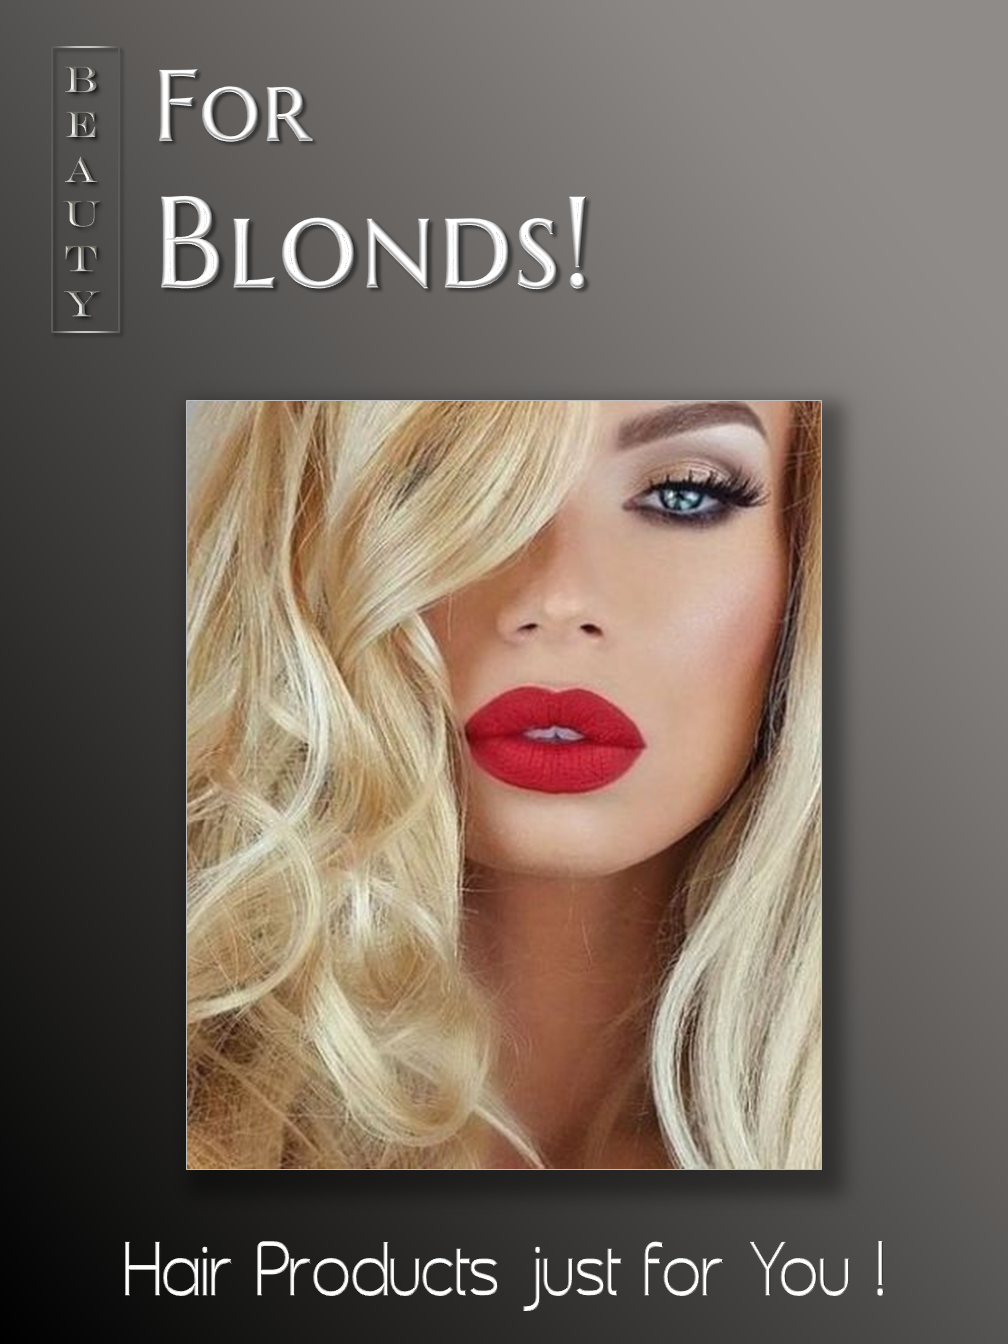 For Blonds